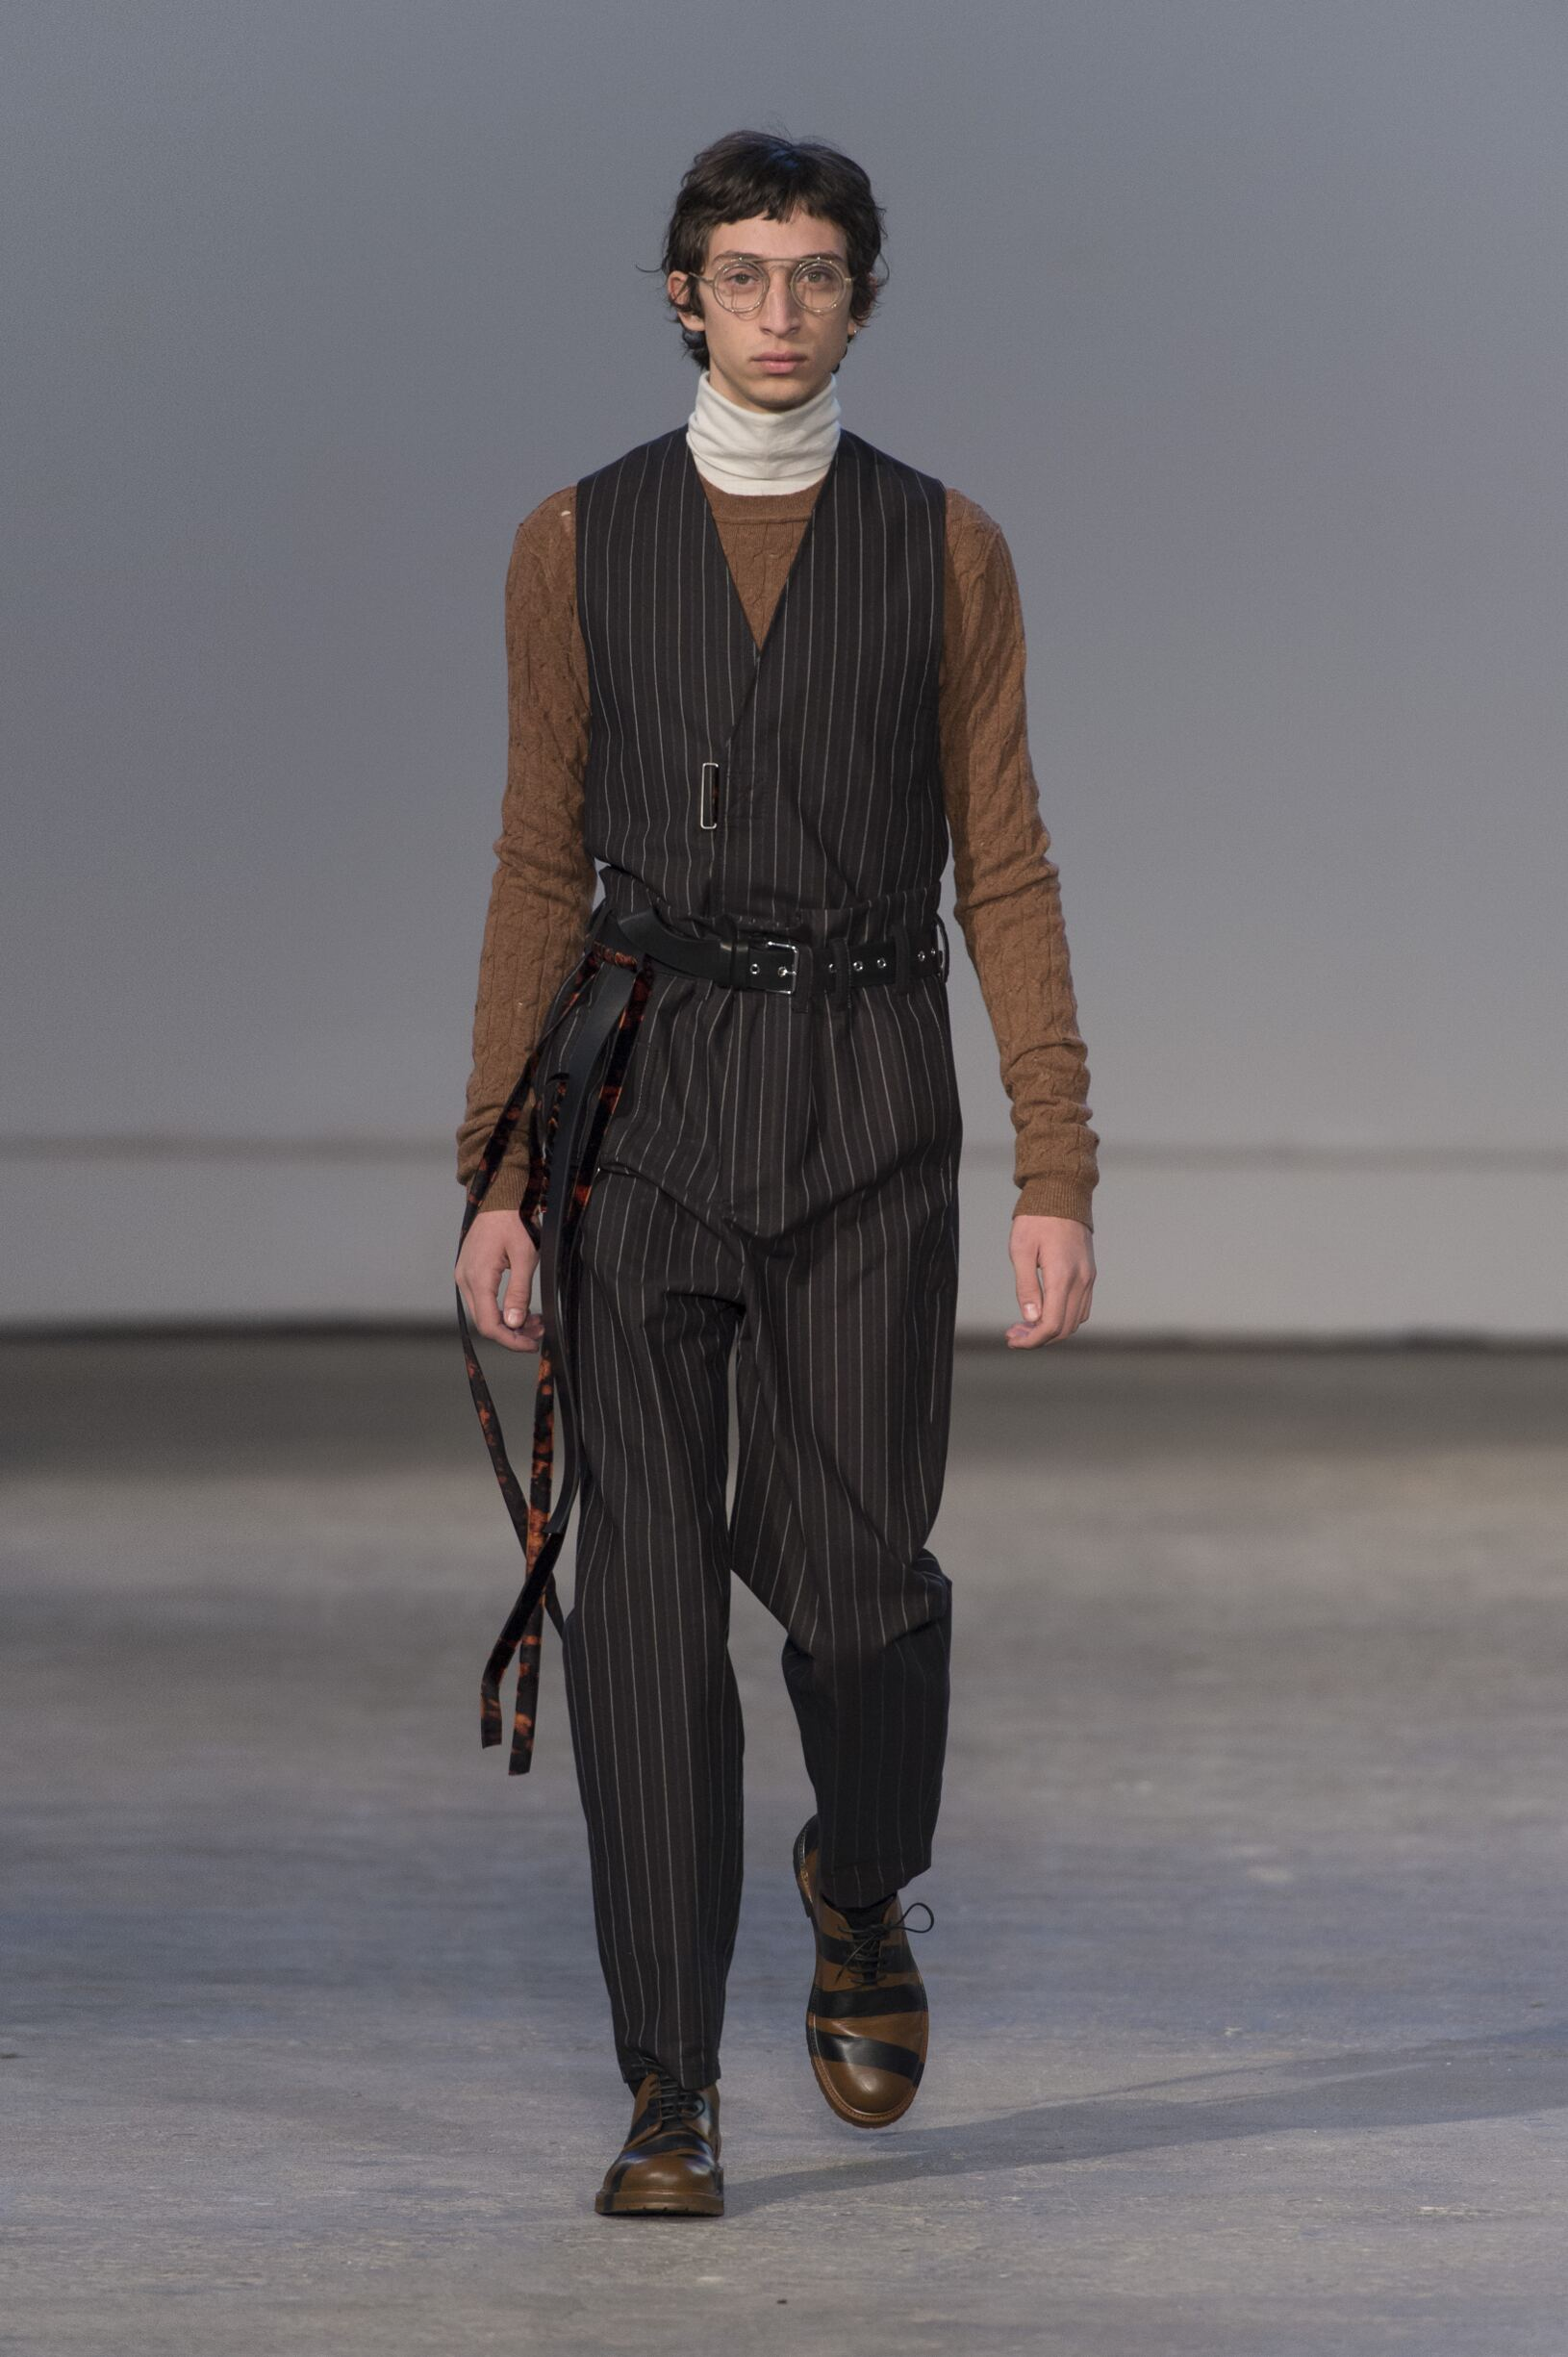 FW 2017-18 Damir Doma Fashion Show